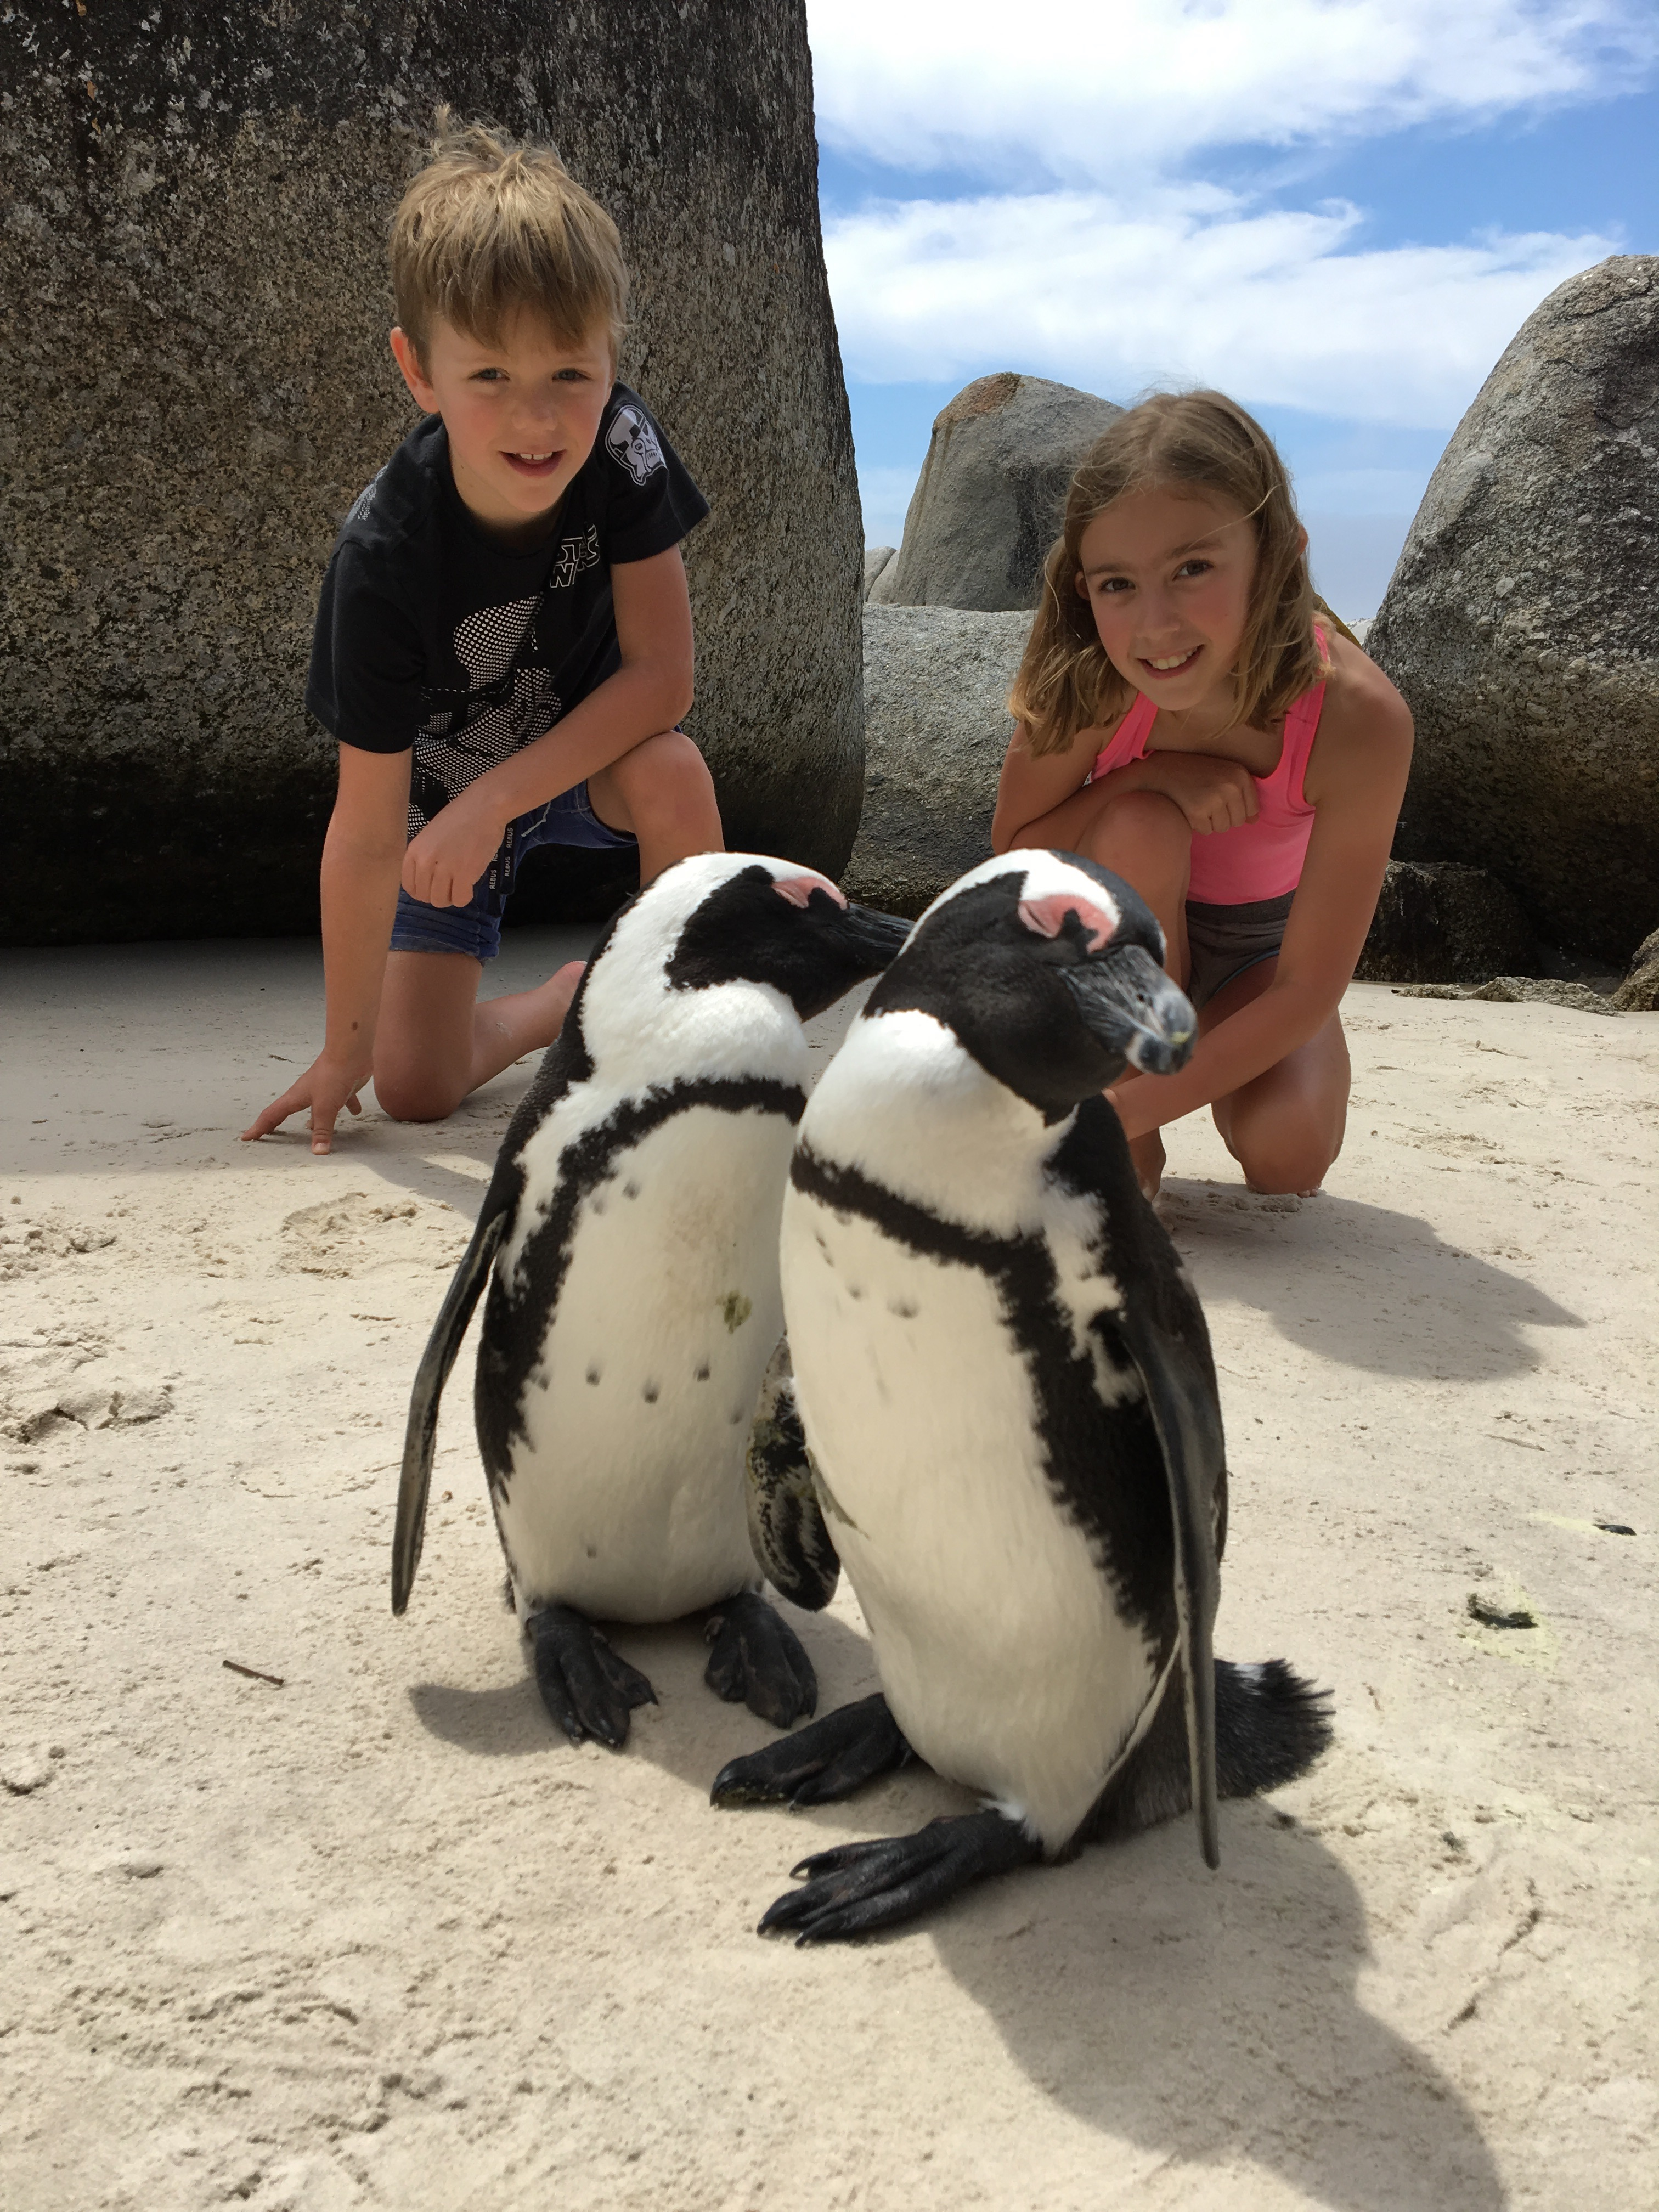 The kids with penguins